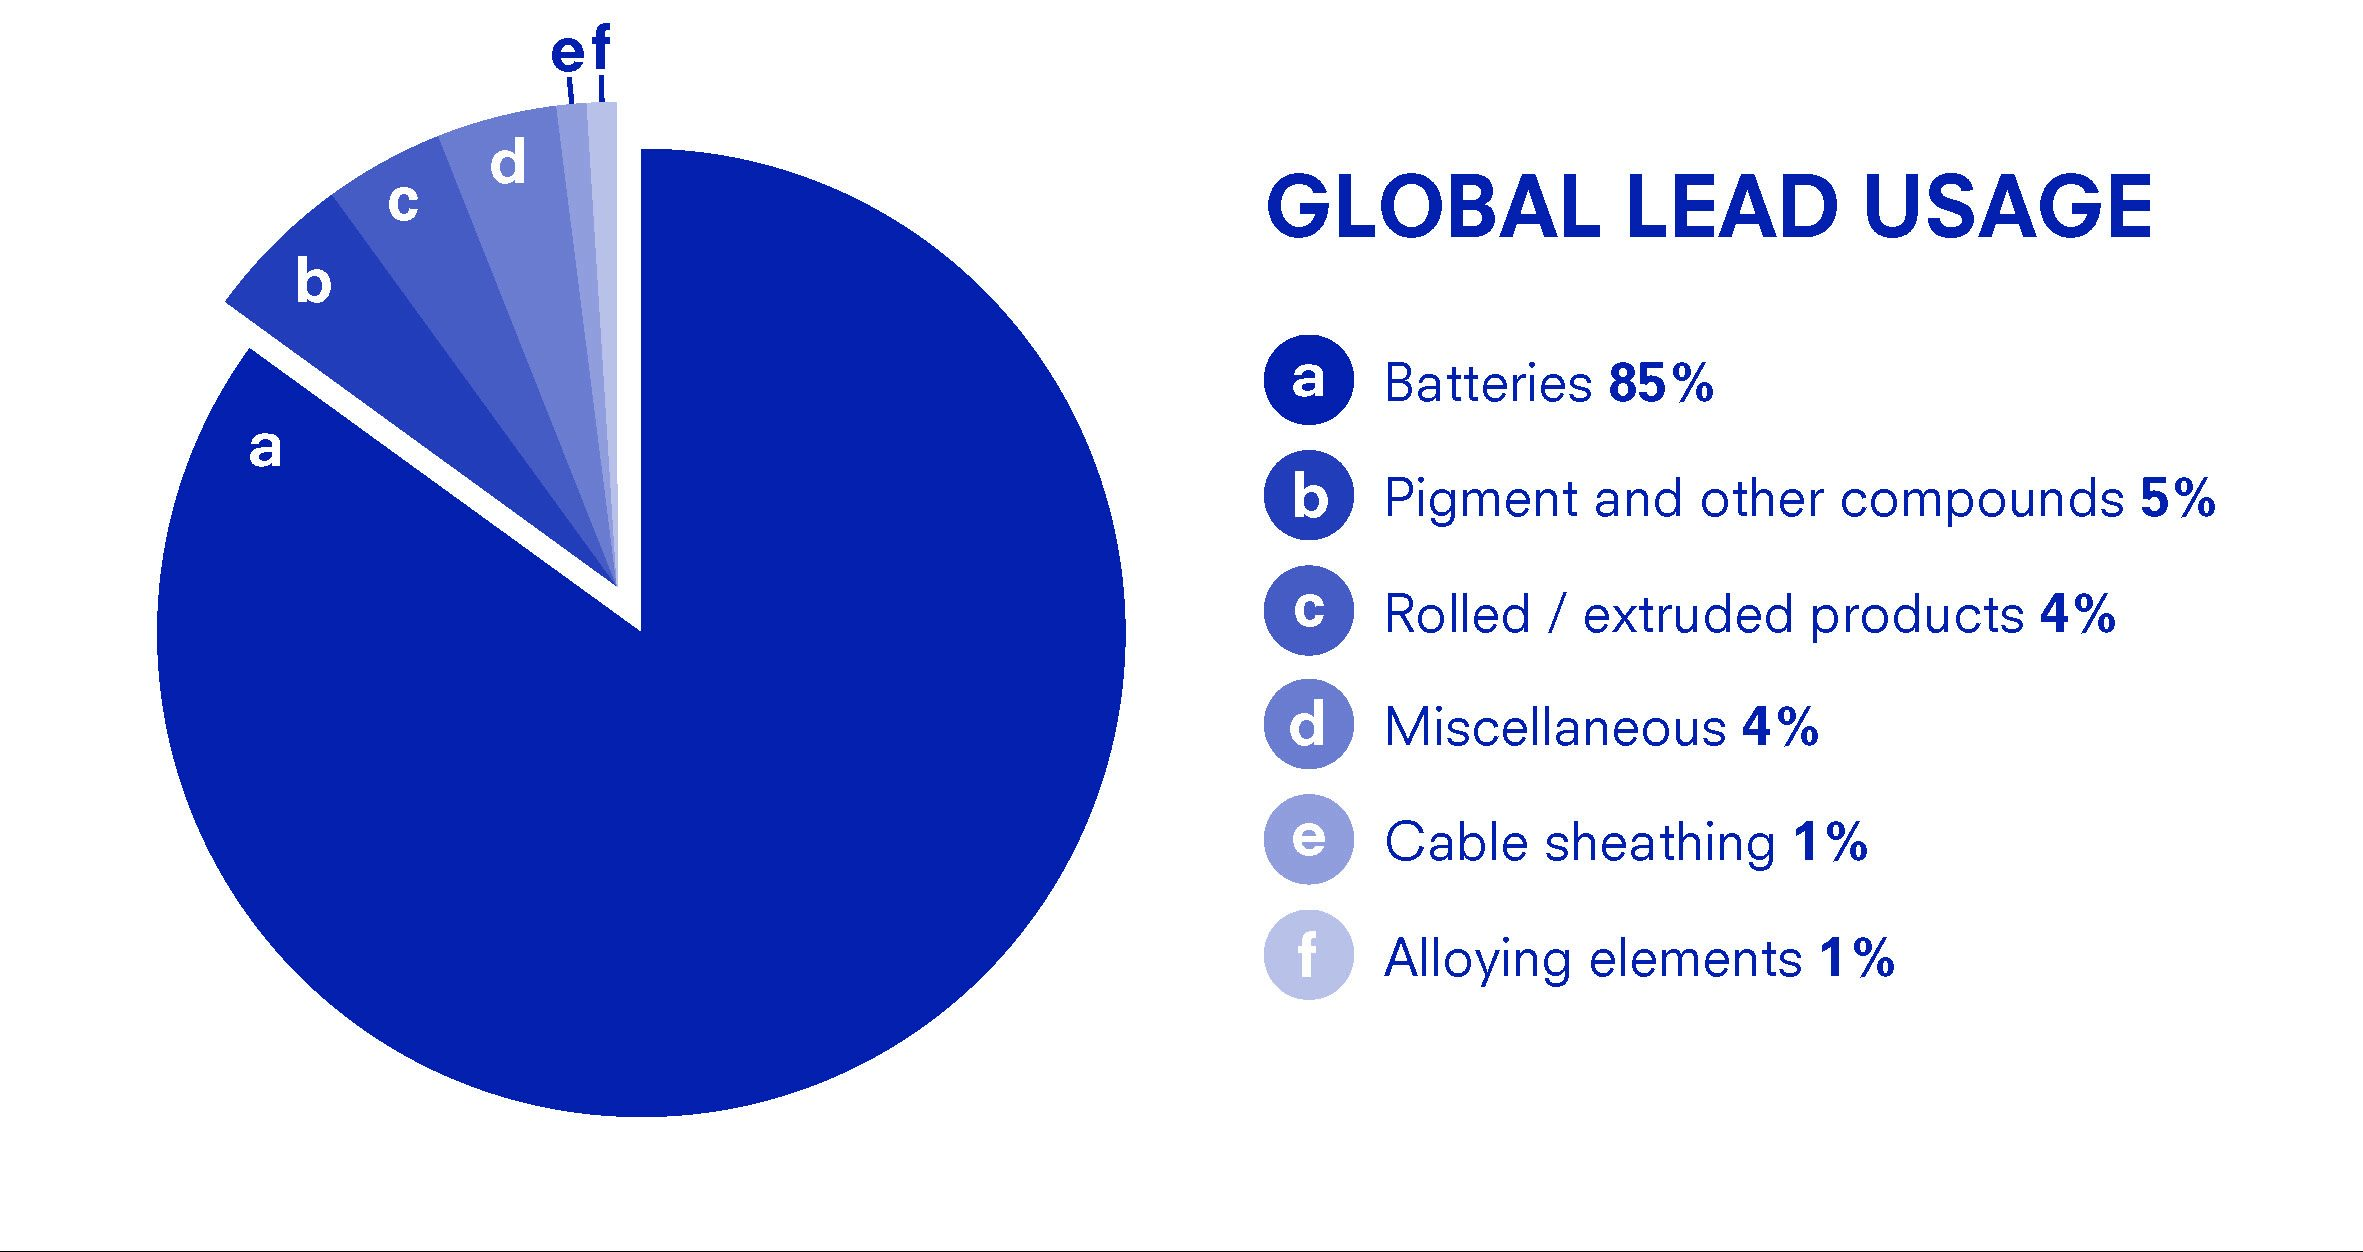 A pie chart illustrating global lead usage. Stats: Batteries 85%, pigment and other compounds 5%, rolled/extruded products 4%, misc. 4%, cable sheathing 1%, alloying elements 1%